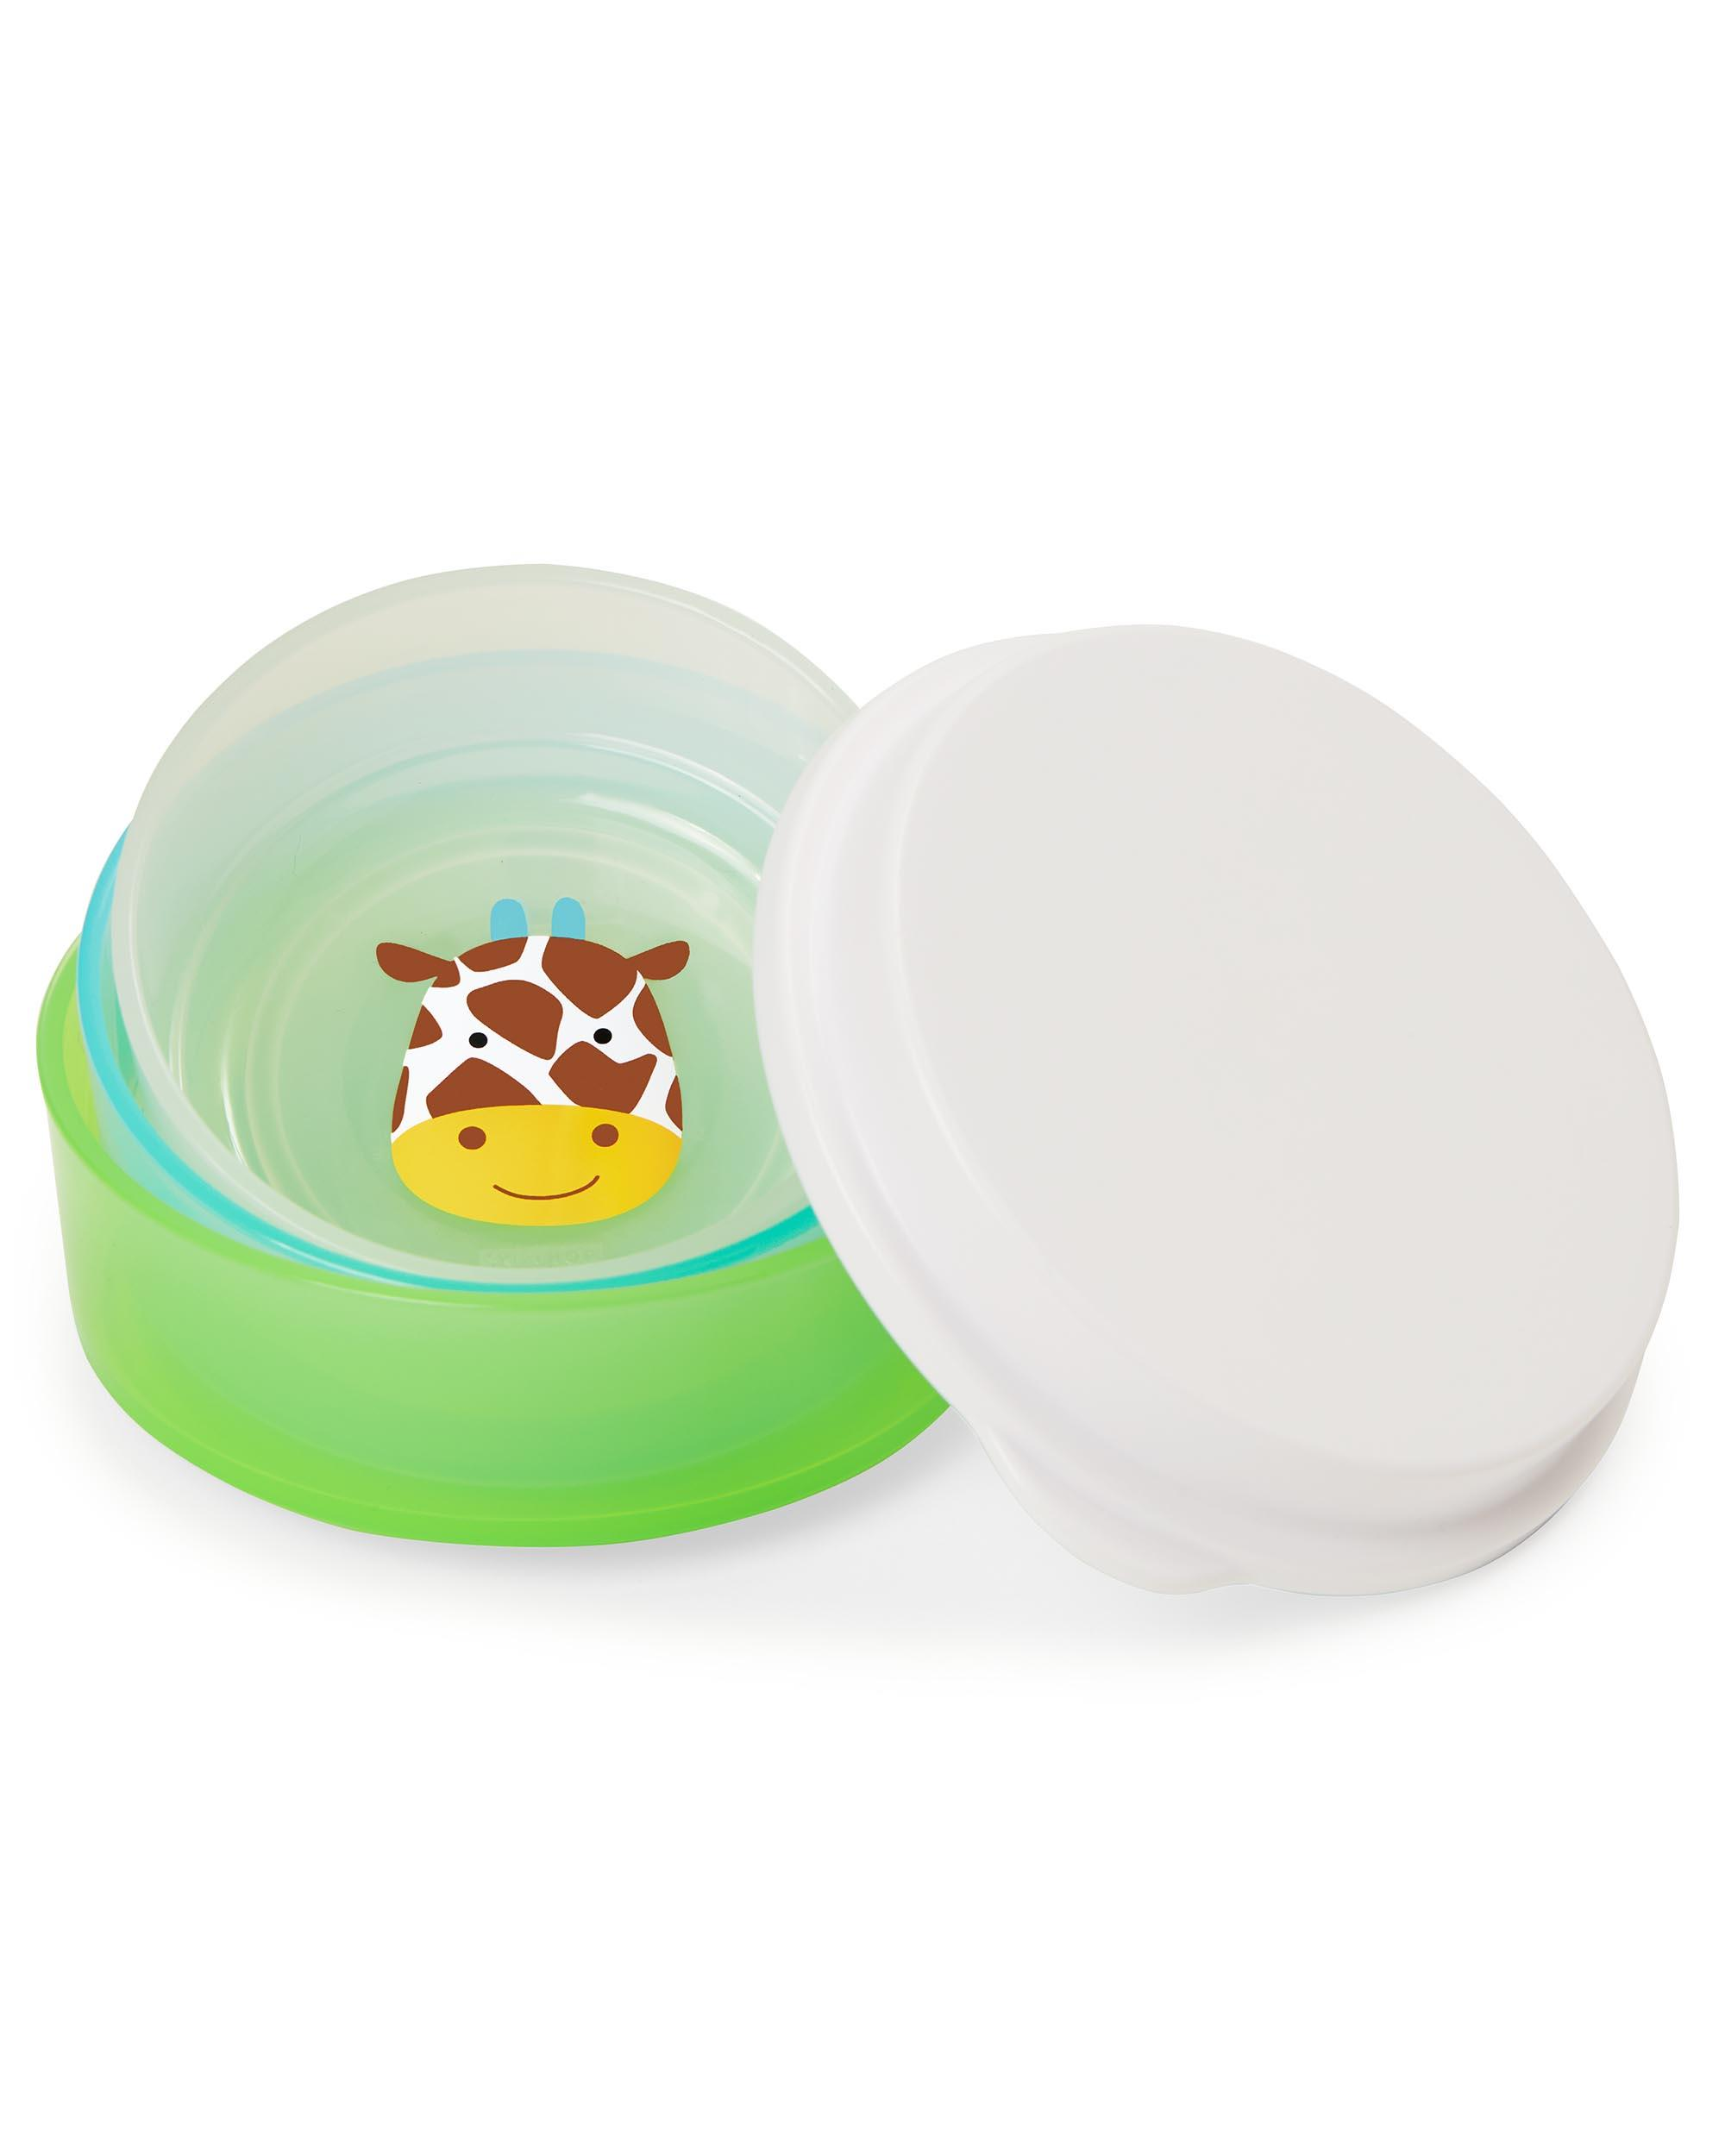 Skip Hop Zoo Smart Serve Kaymaz Kaseler Giraffe 54624 - Skip Hop Zoo Smart Serve Kaymaz Kaseler Giraffe